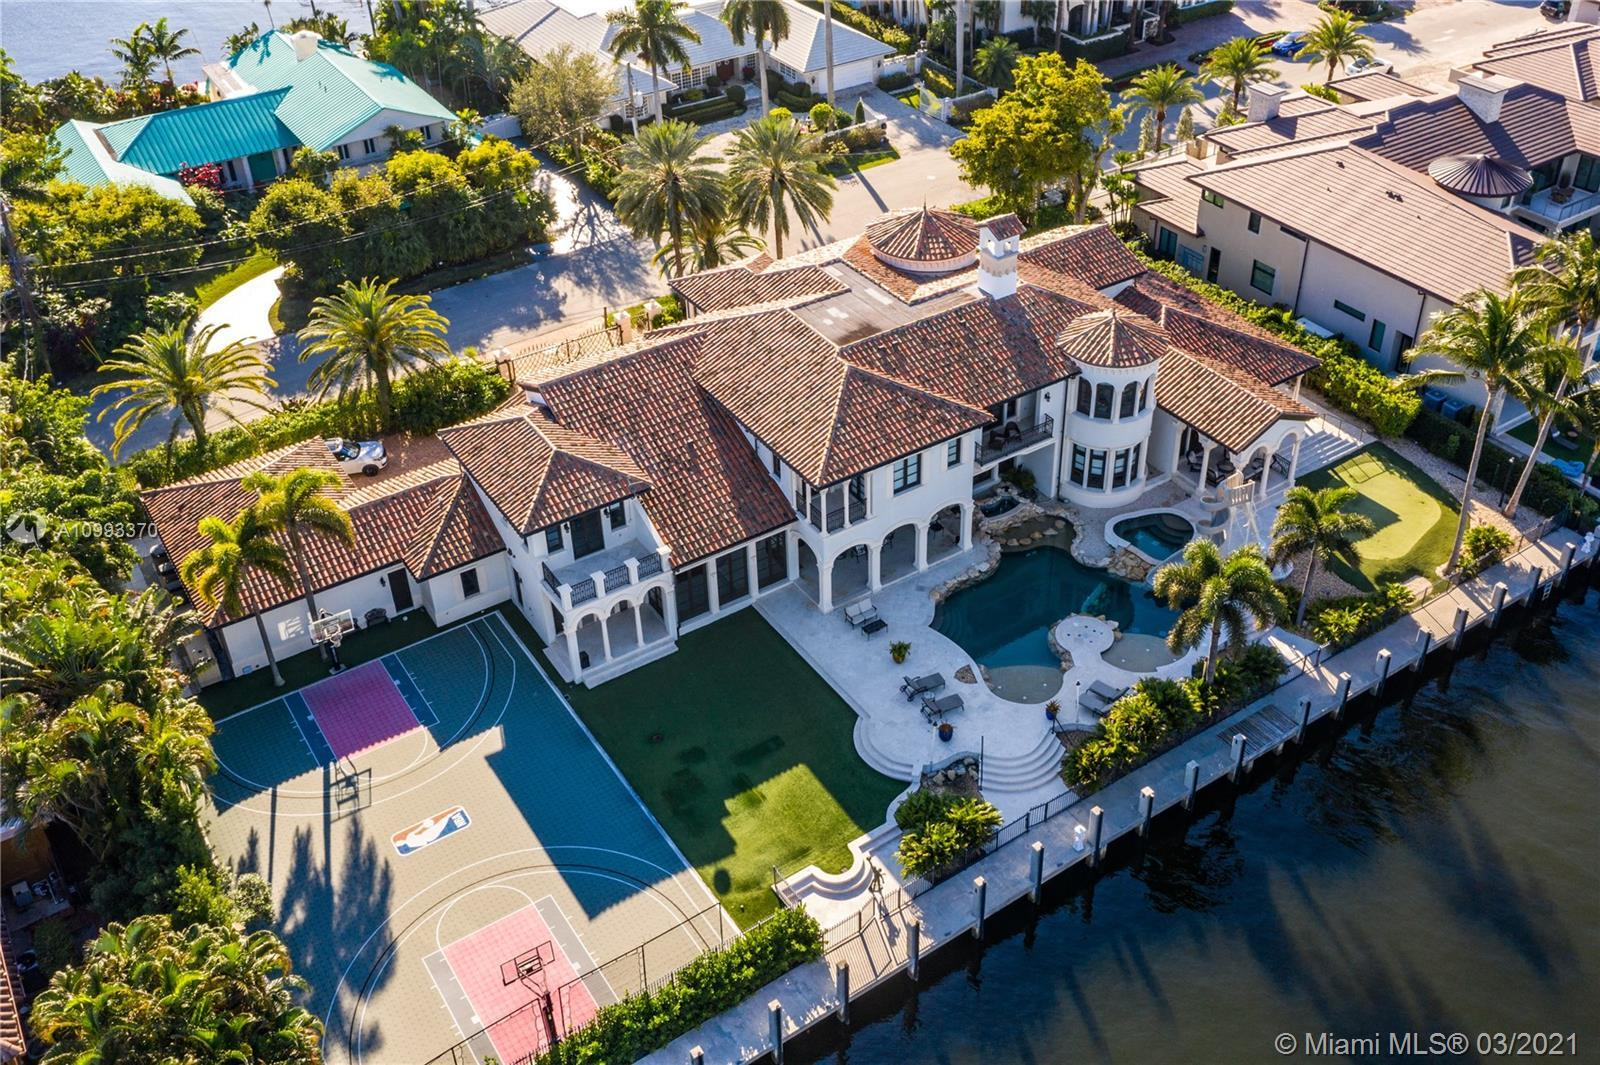 Located in Harbor Beach, one of the most exclusive gated communities in Ft Lauderdale, is the specta